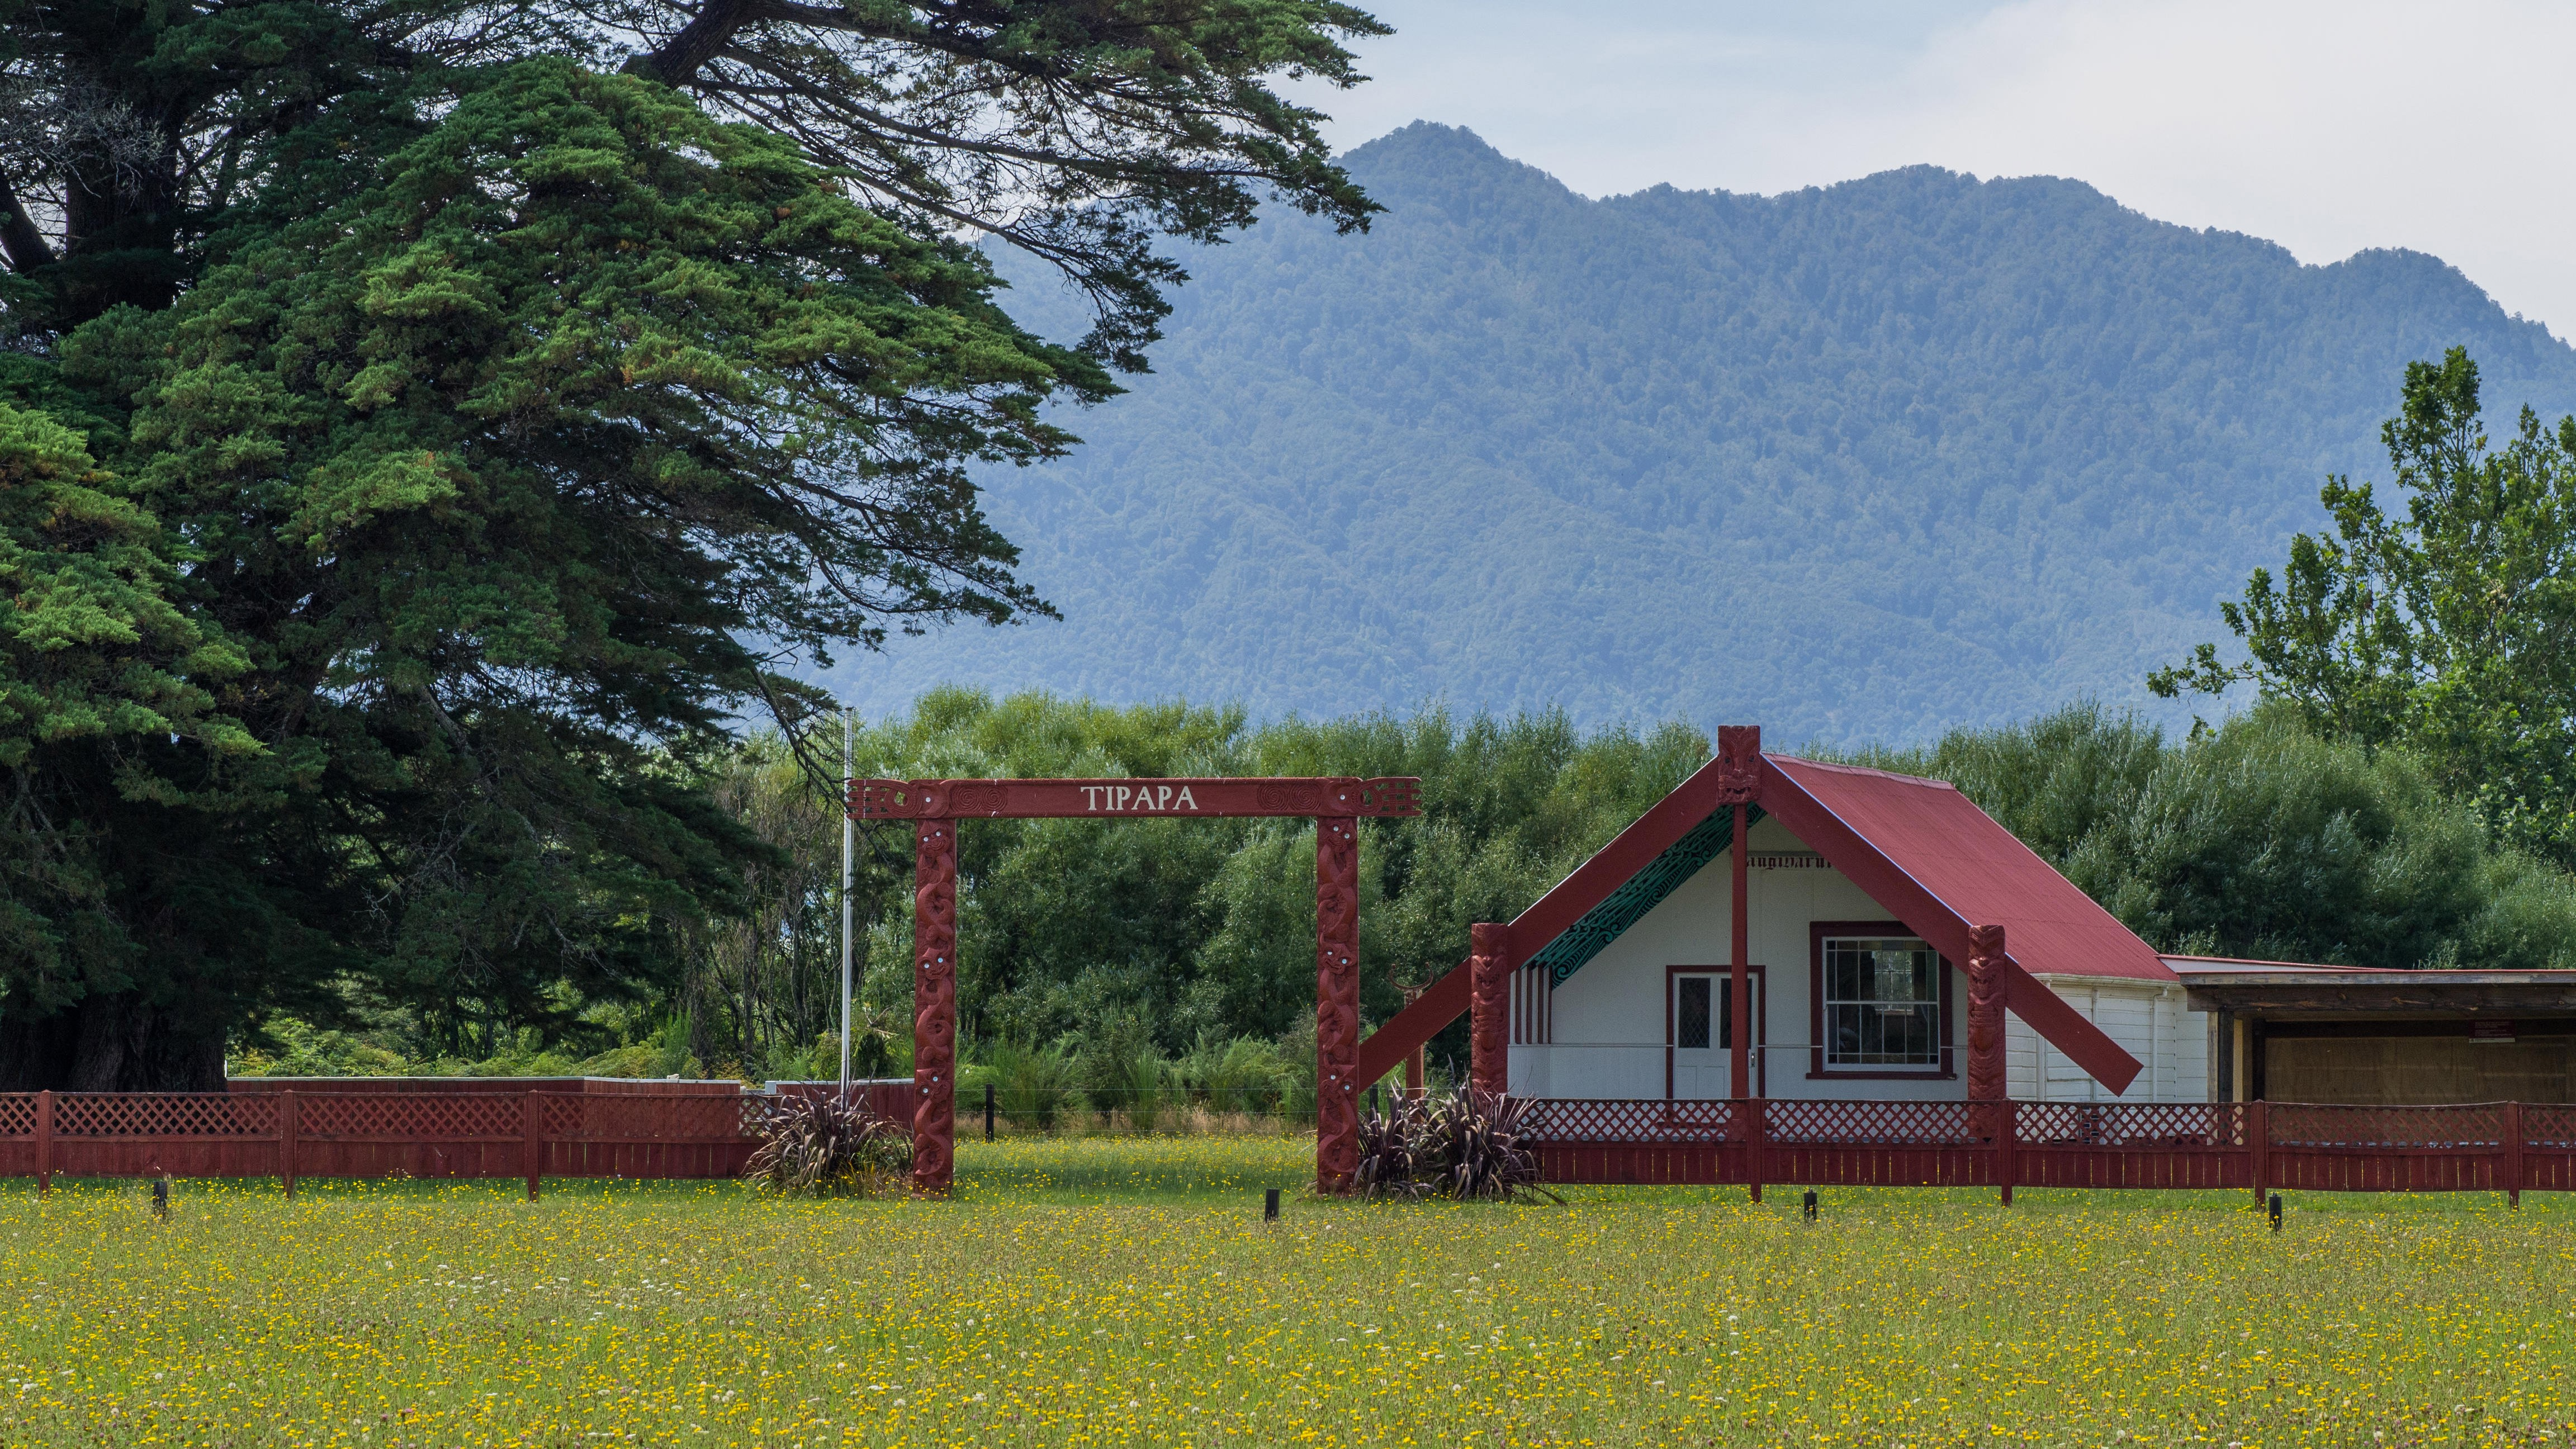 The marae was once central to everyday life in New Zealand